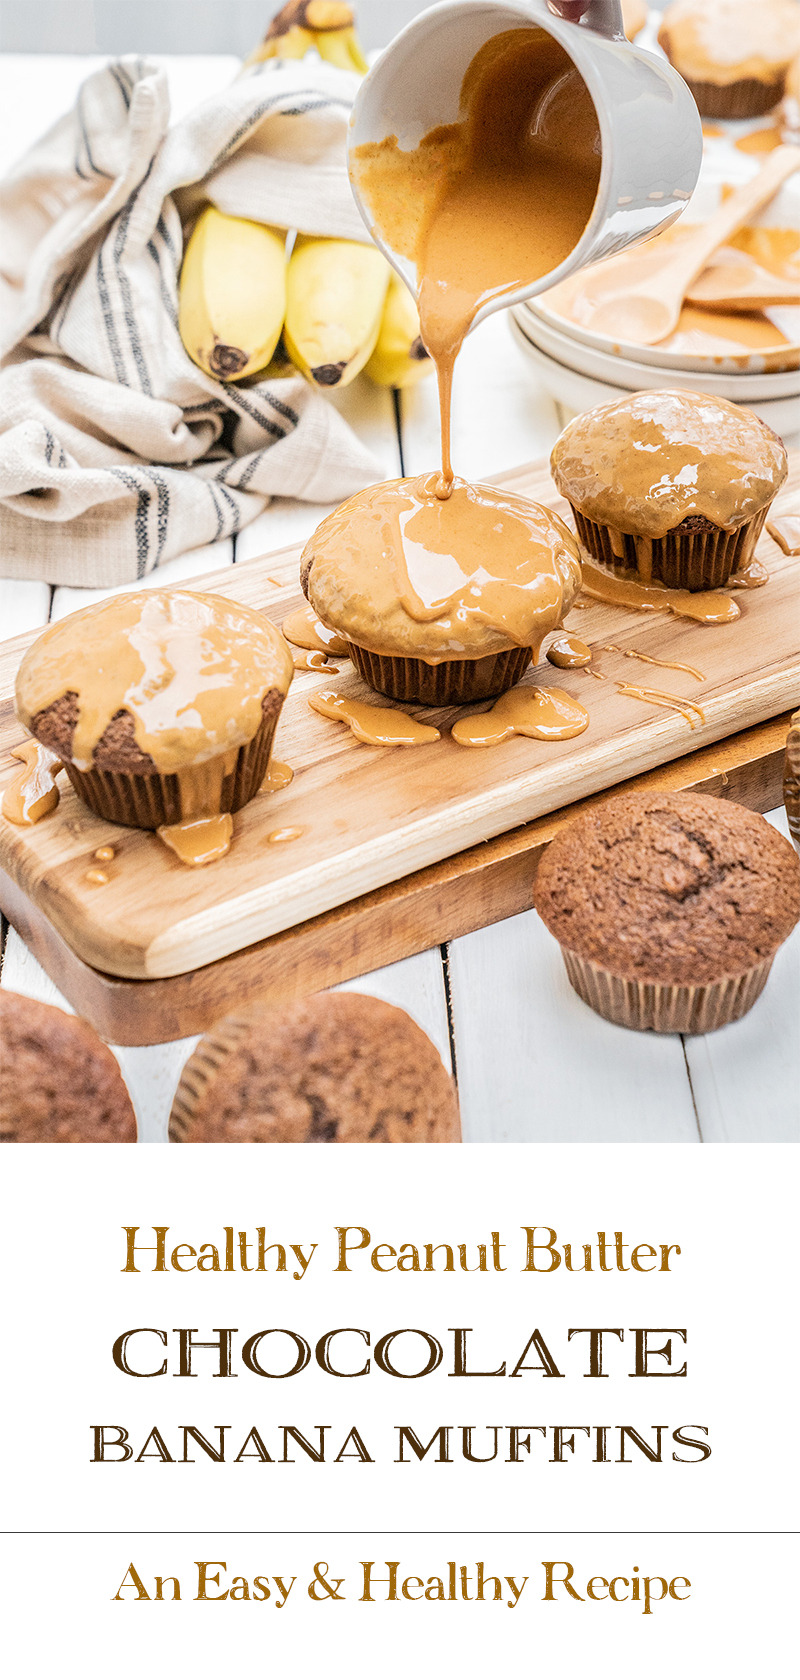 Healthy-Peanut-Butter-Chocolate-Banana-Muffins-Recipe